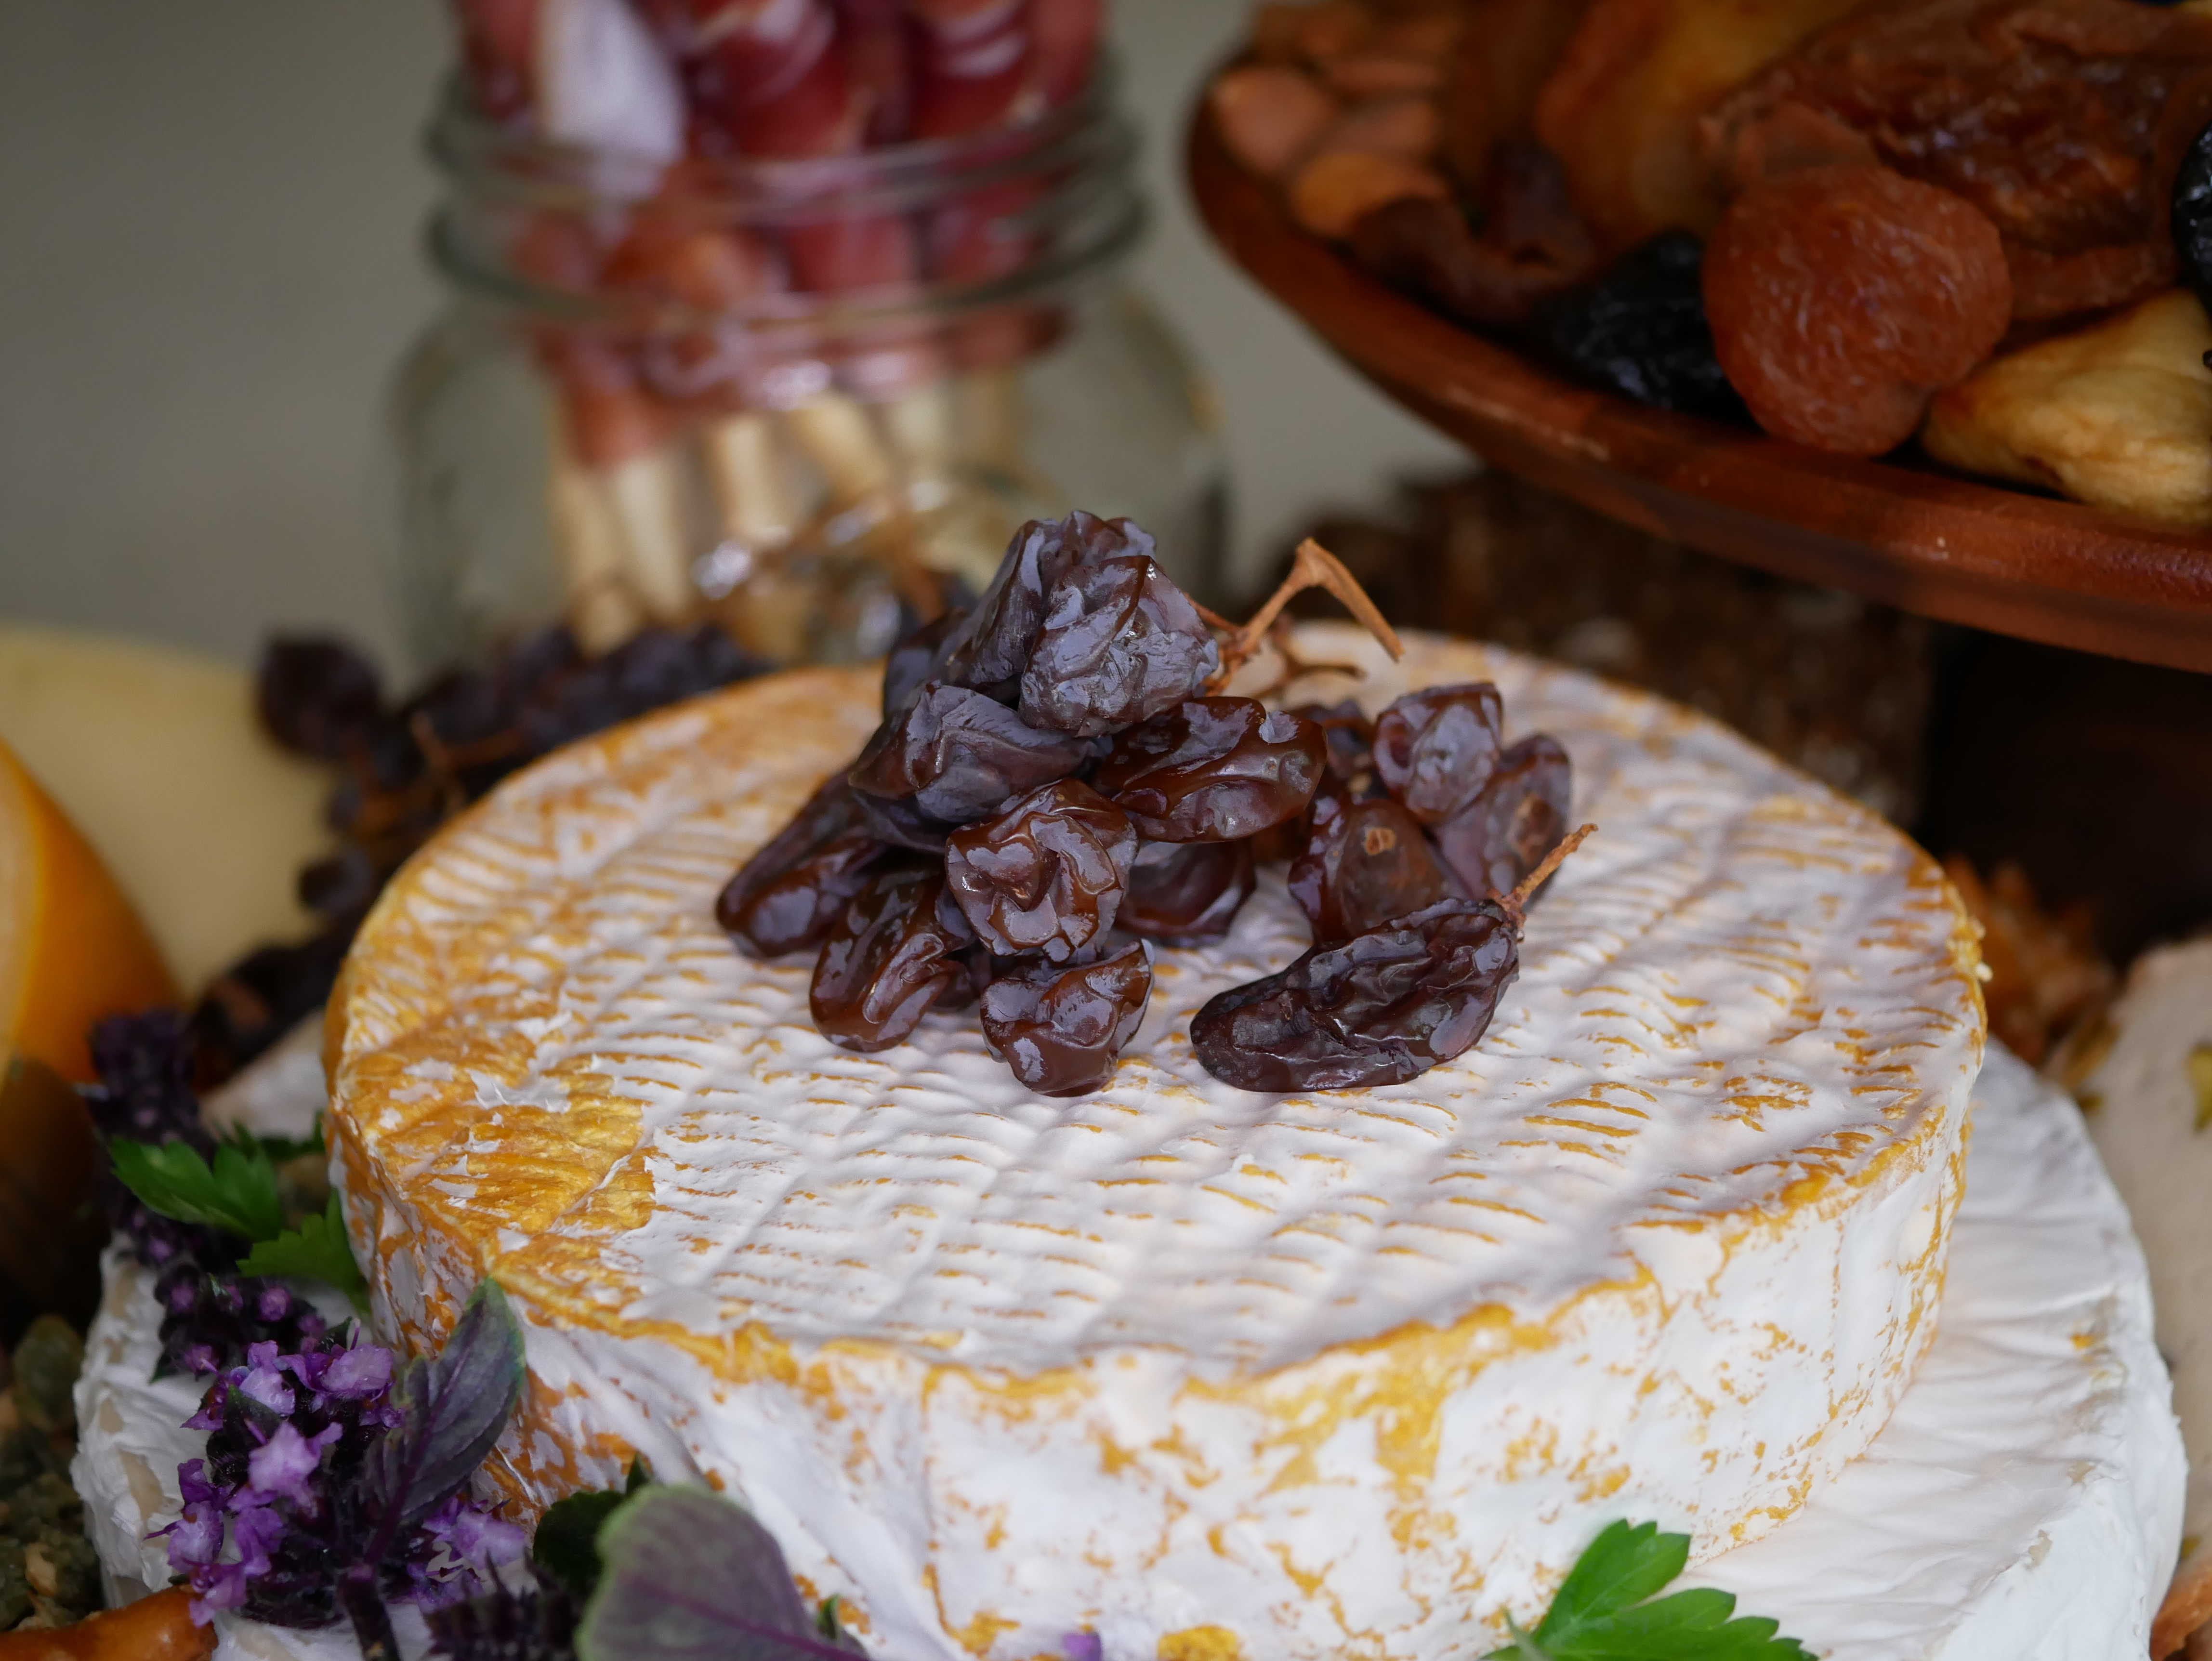 Grazing-Platter-washed-rind-and-muscatels.JPG#asset:41654